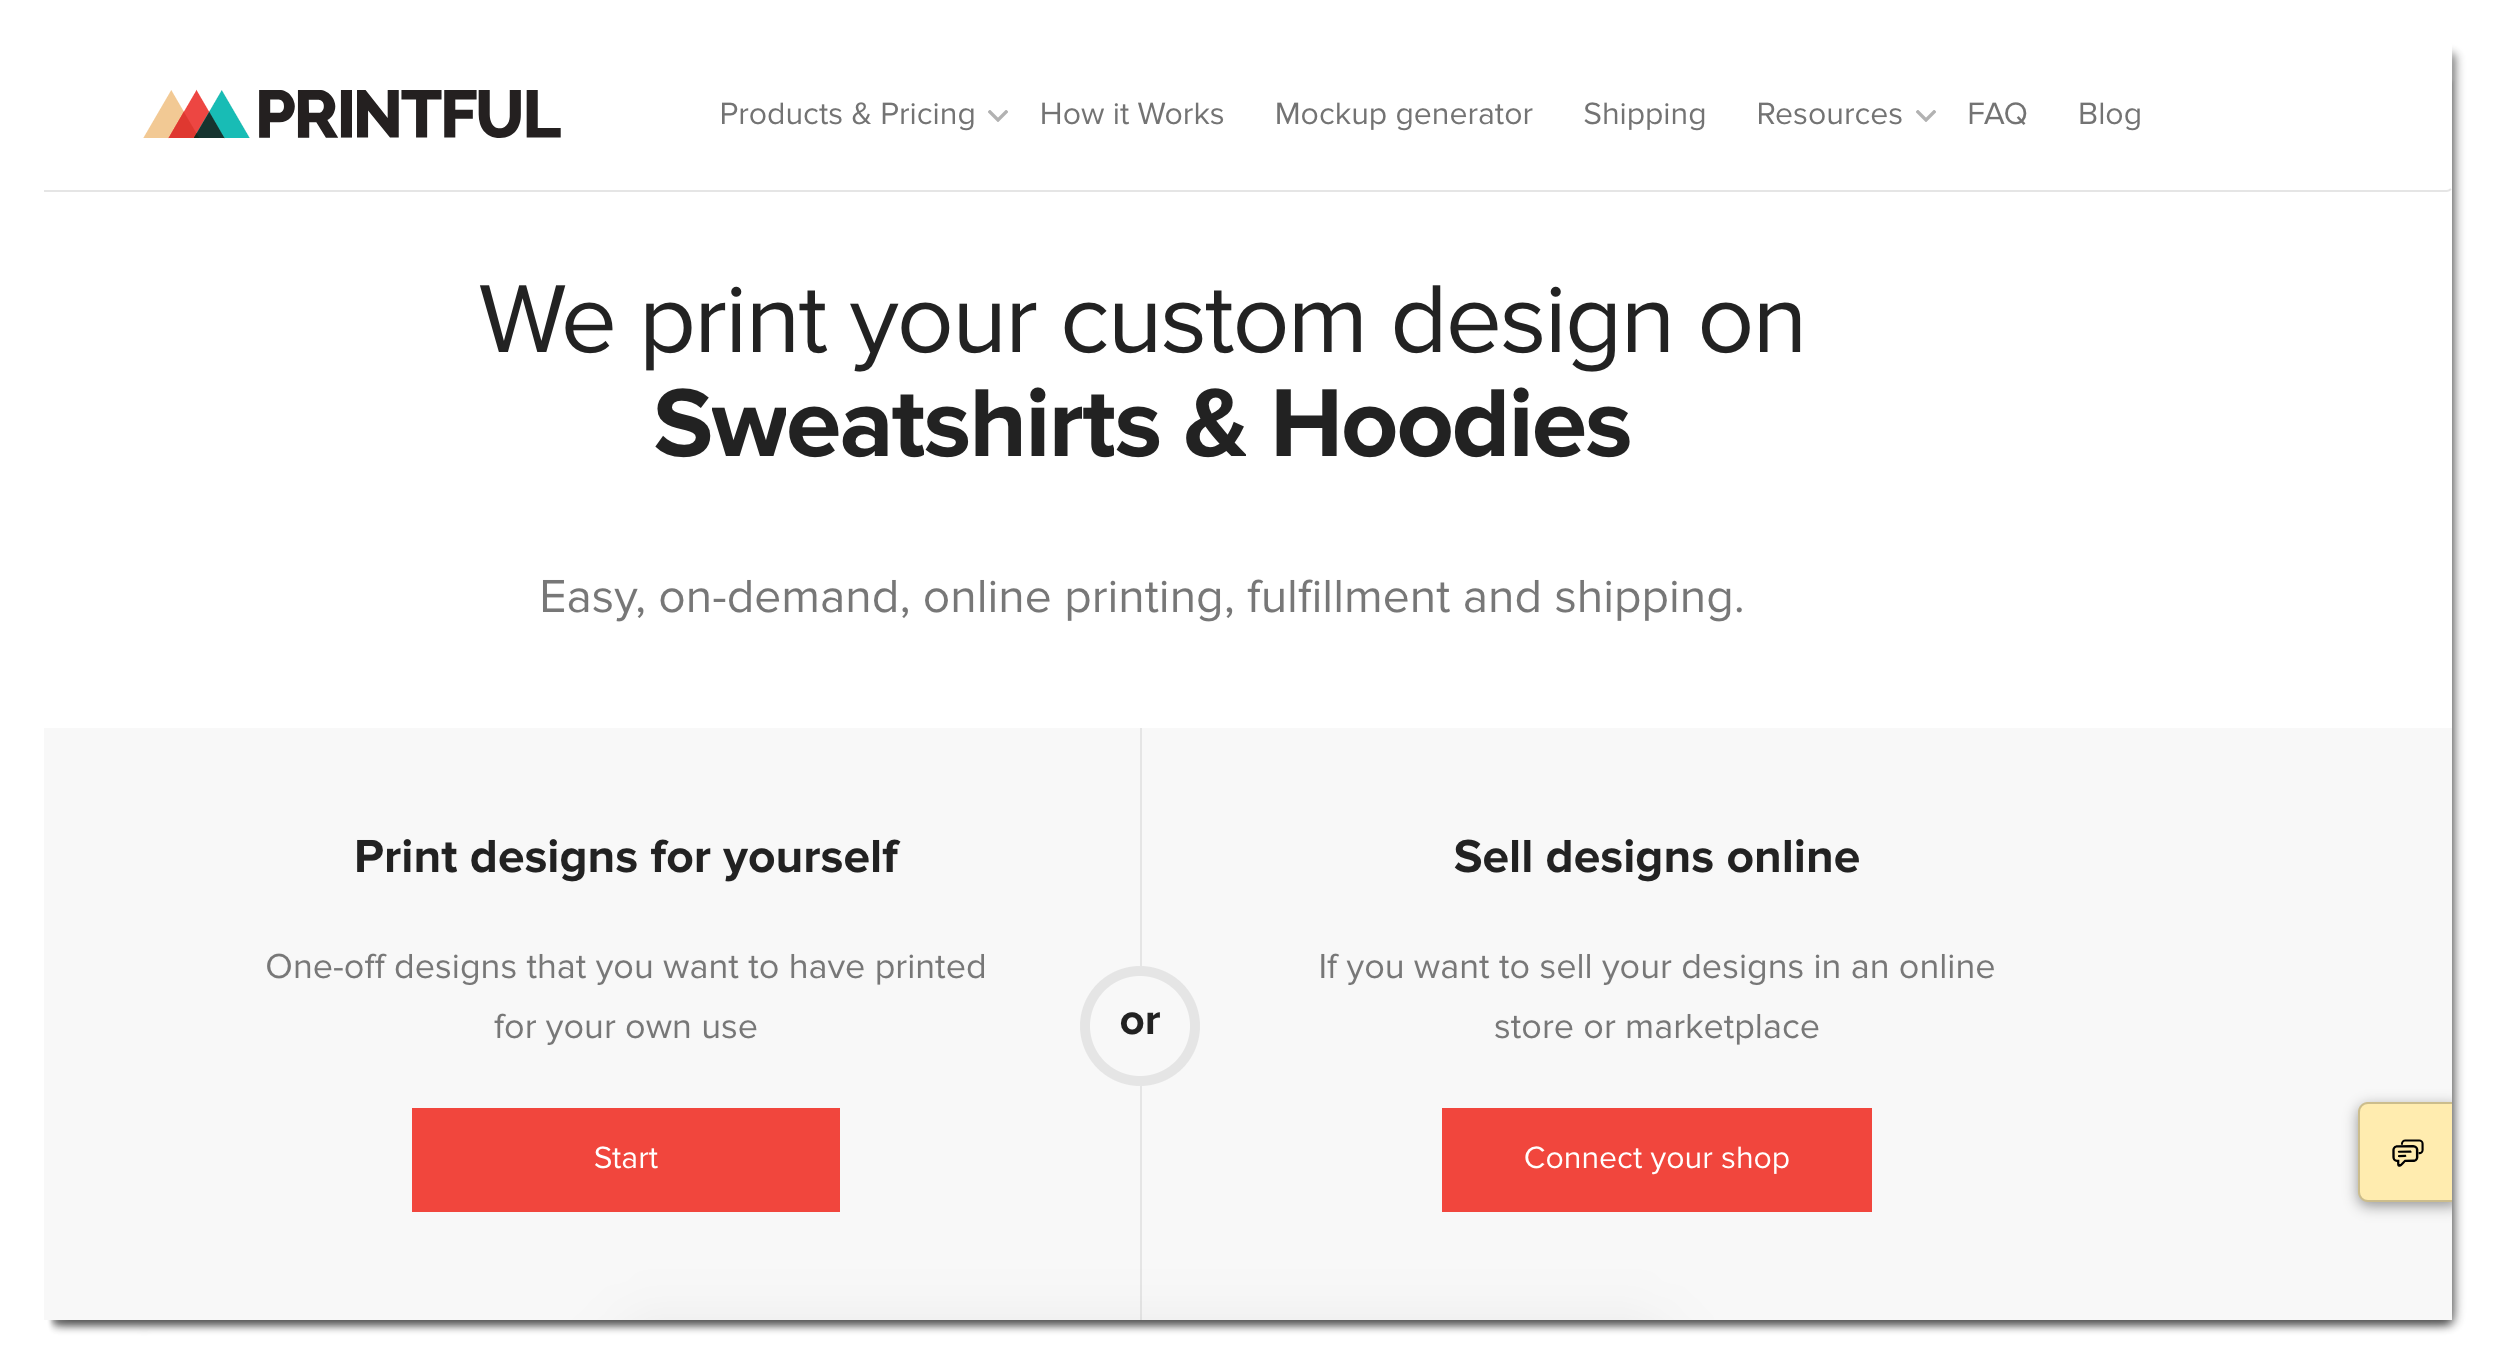 10 Best WooCommerce Plugins to Improve Your Store - Printful